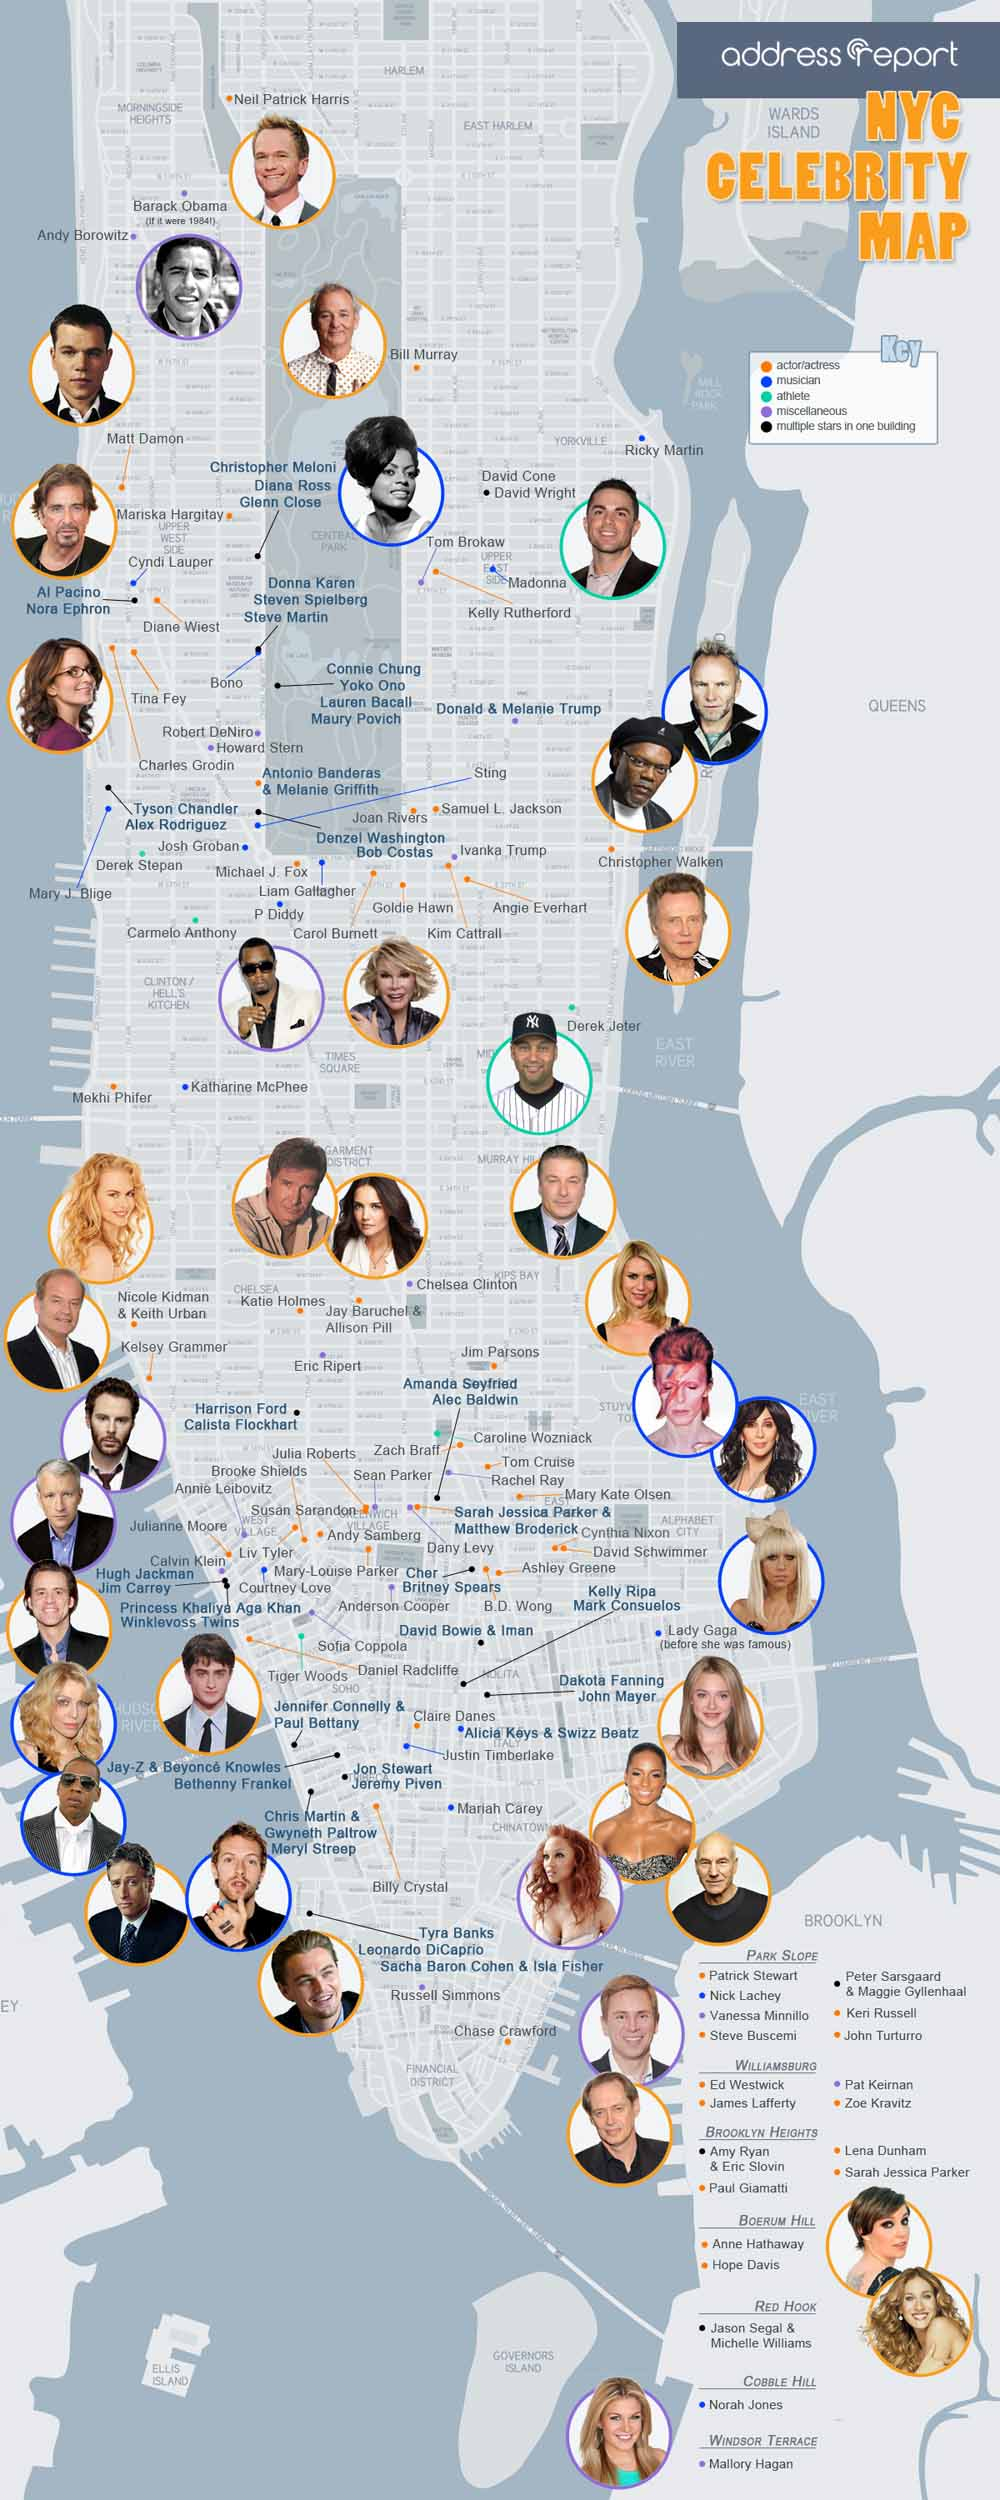 nyc celebrity star map 2013 by address report